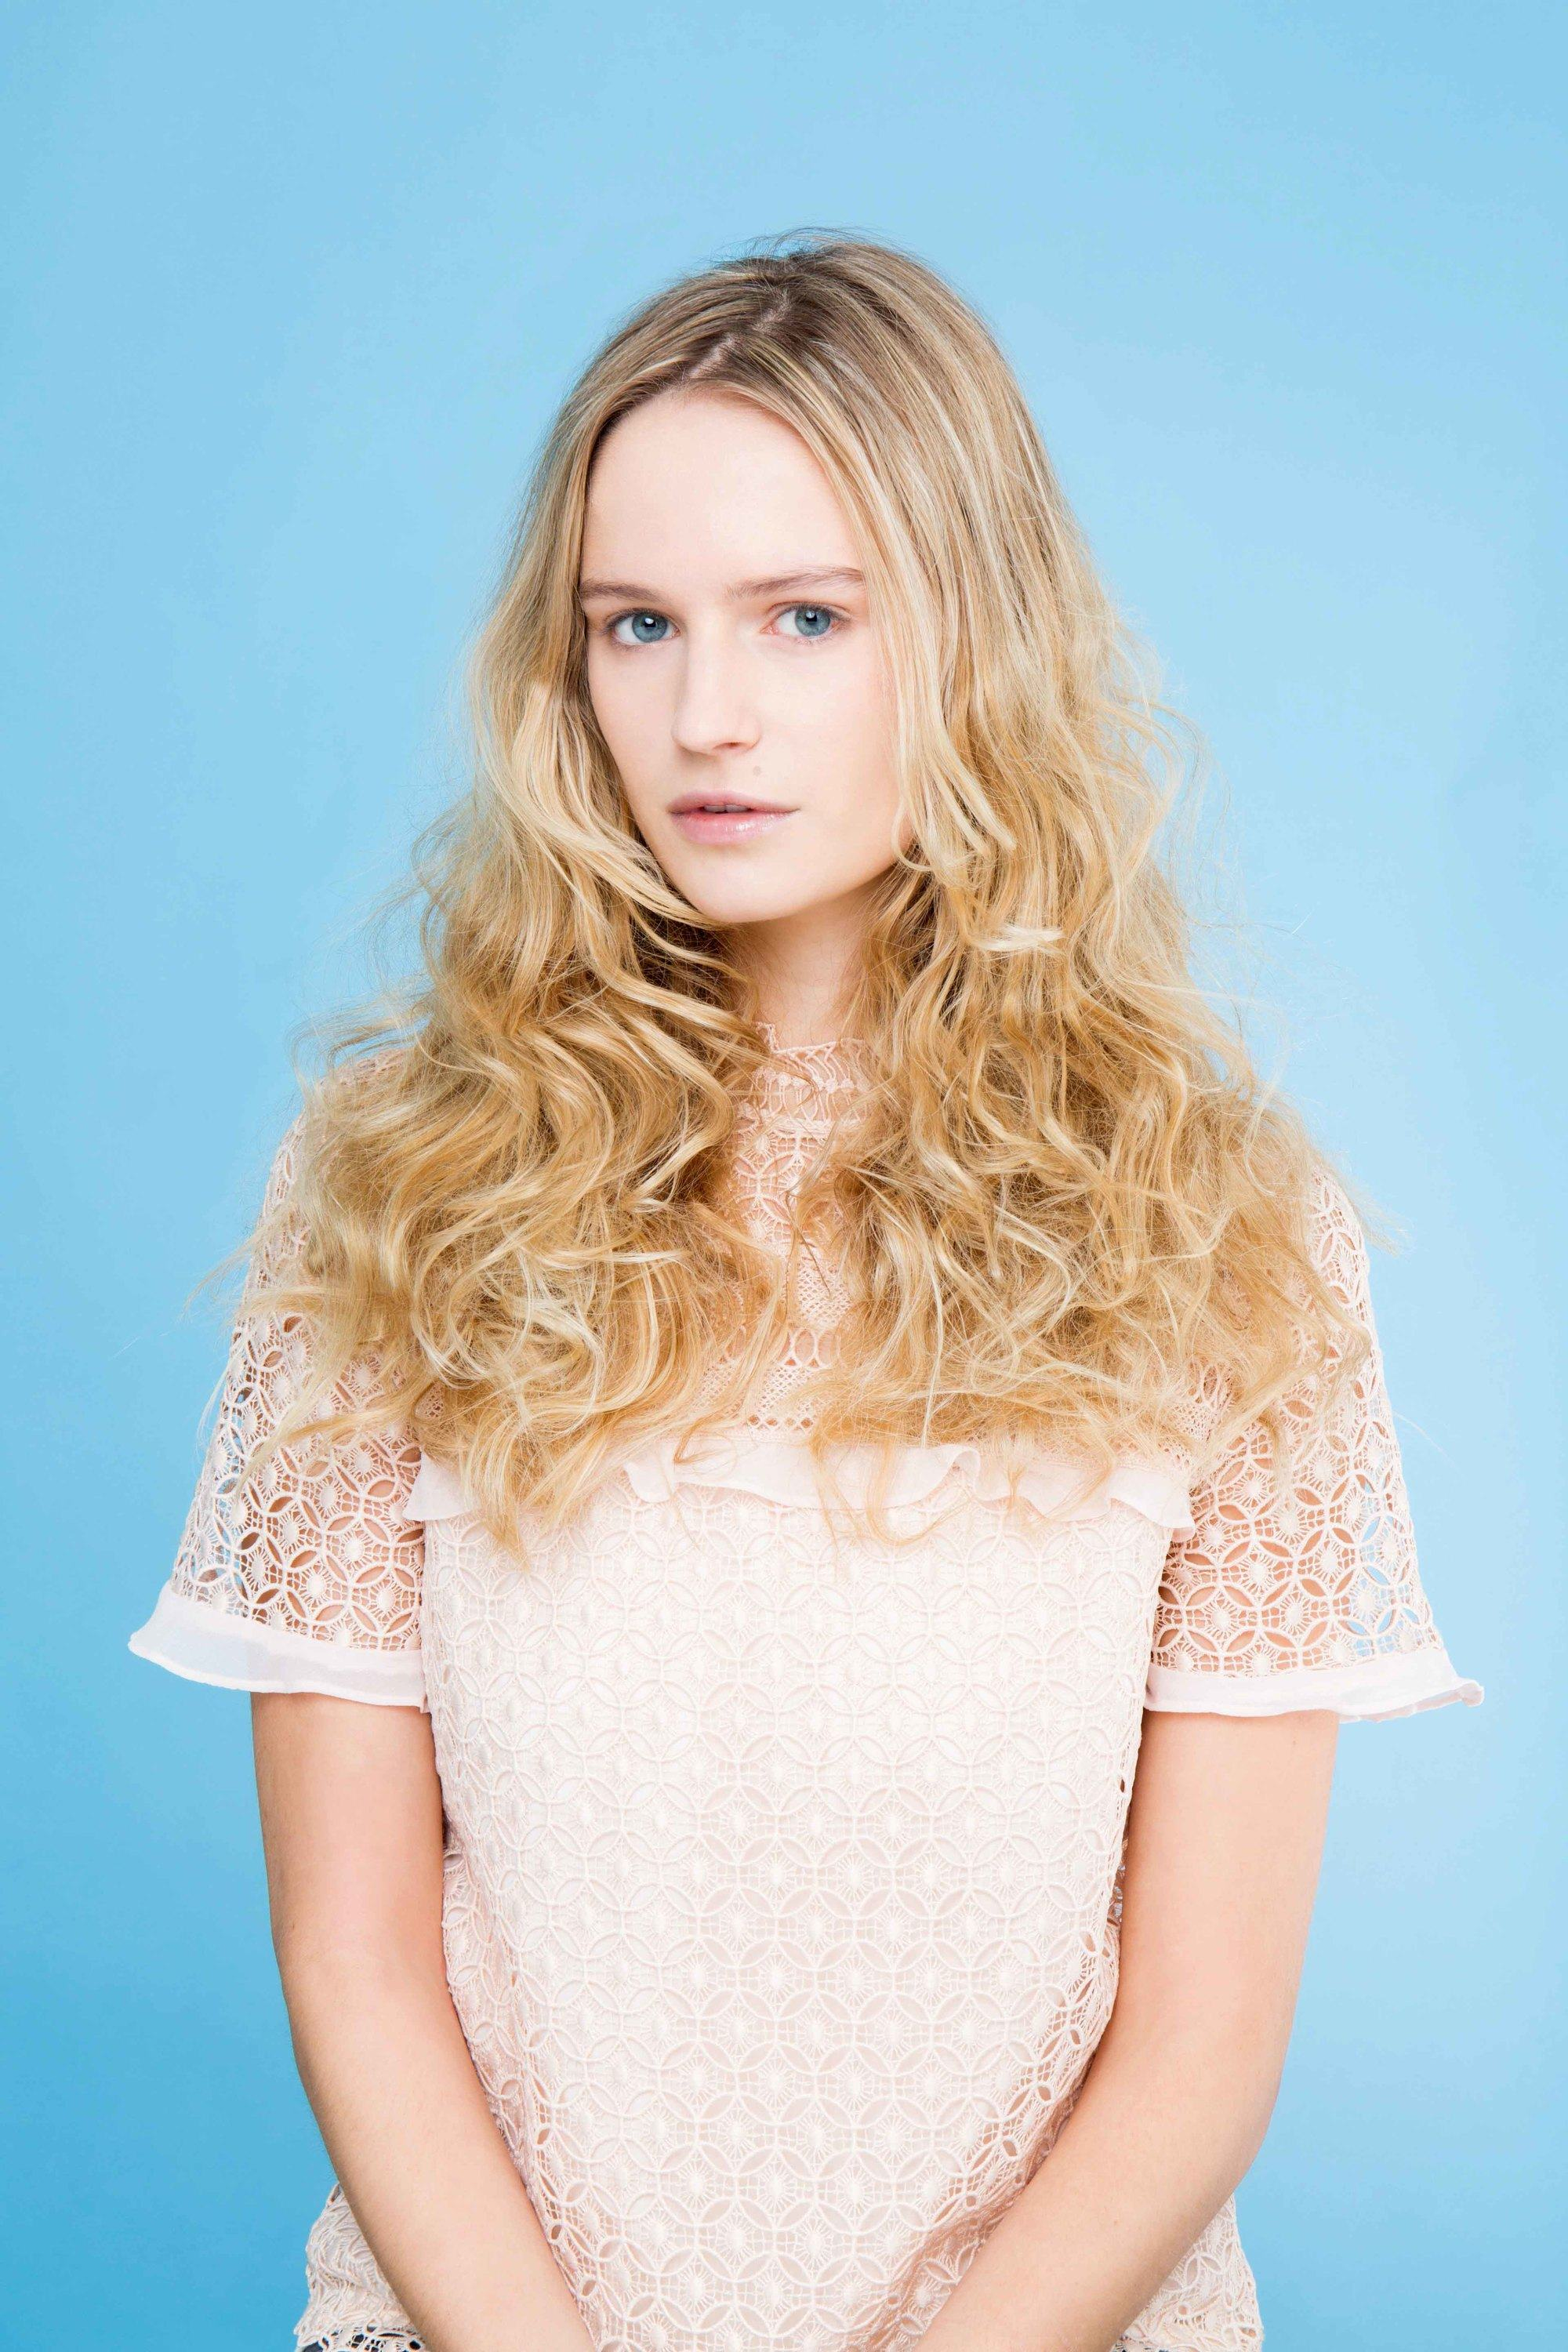 How to use a curling wand: Blonde model with curly ends, wearing a white lace top